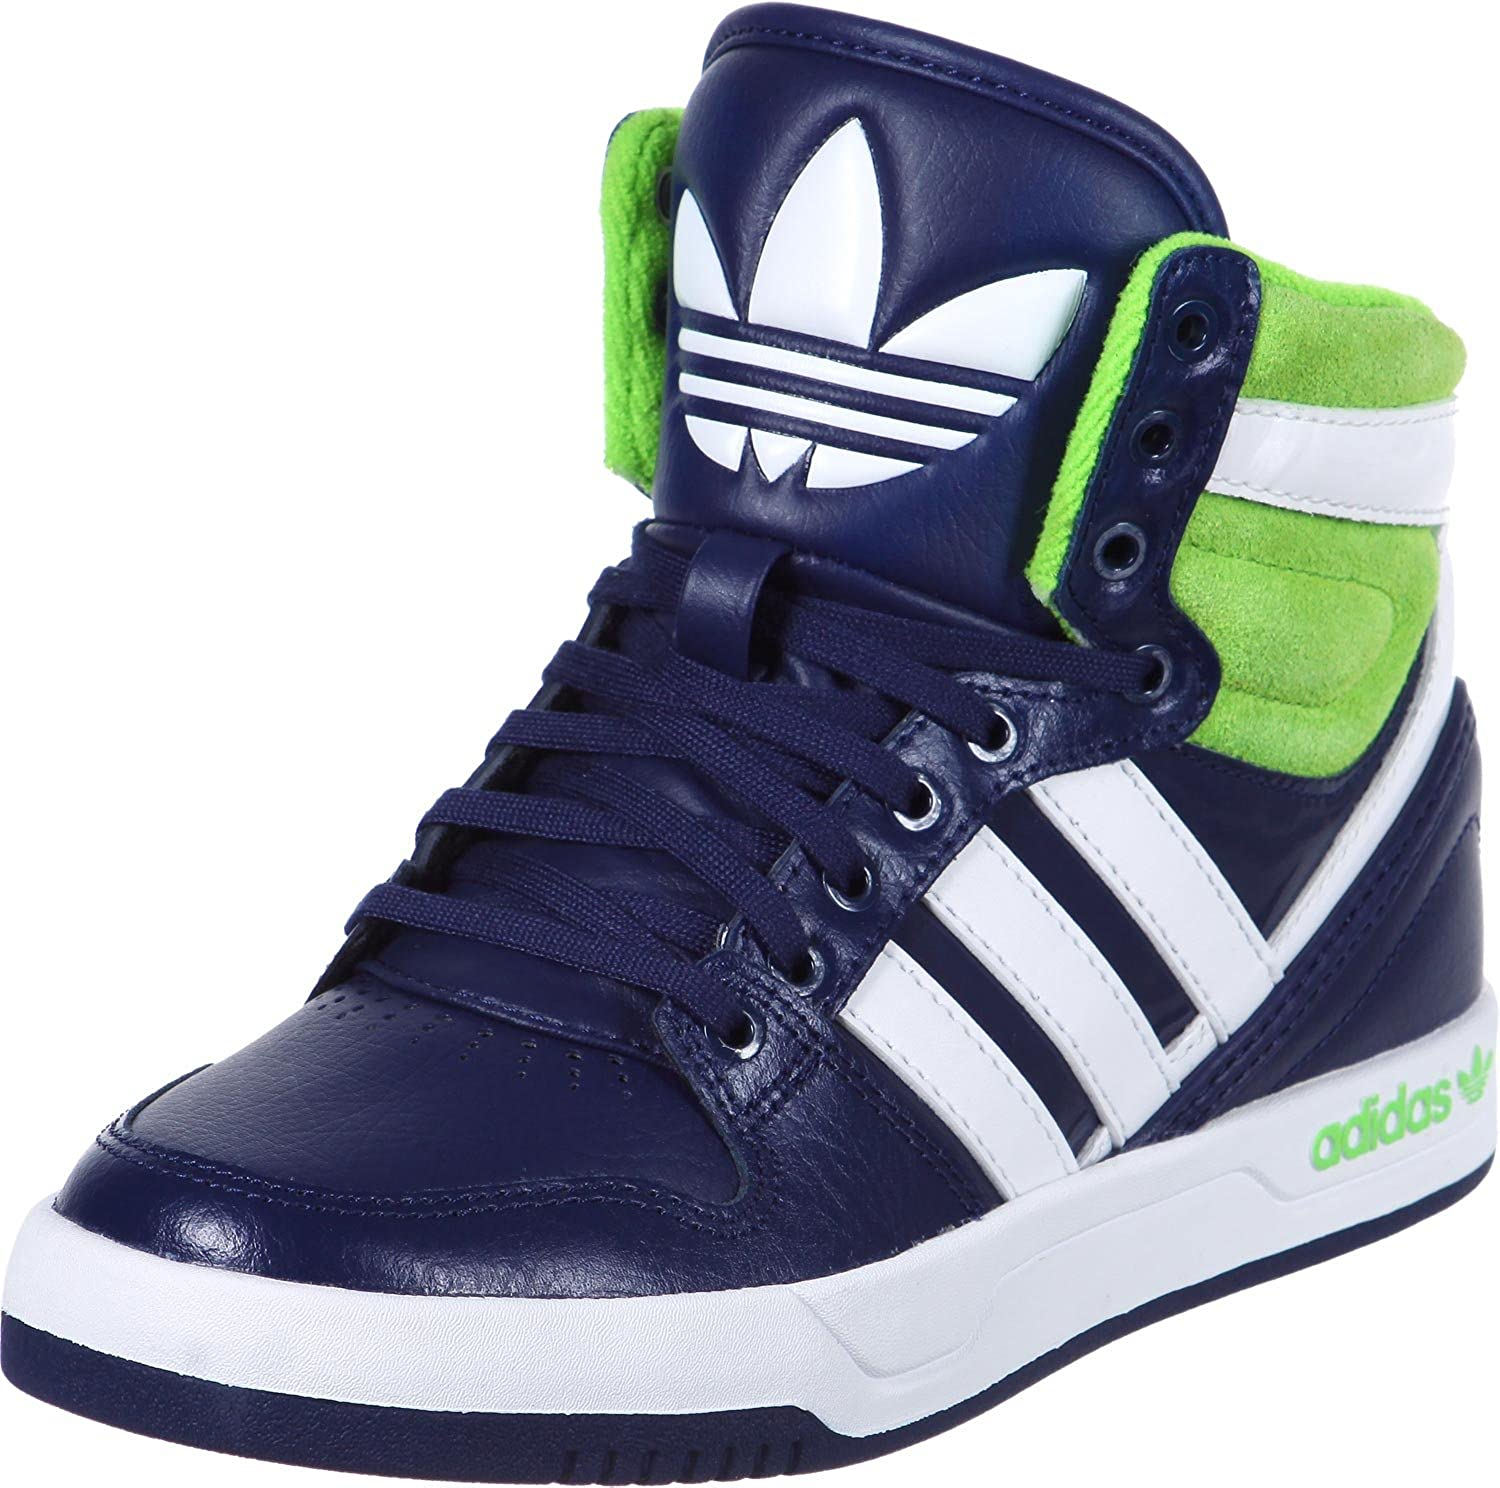 Adidas - Court Attitude - Color: Bianco-Blu marino-Verde - Size: 40.0: Amazon.it: Scarpe e borse